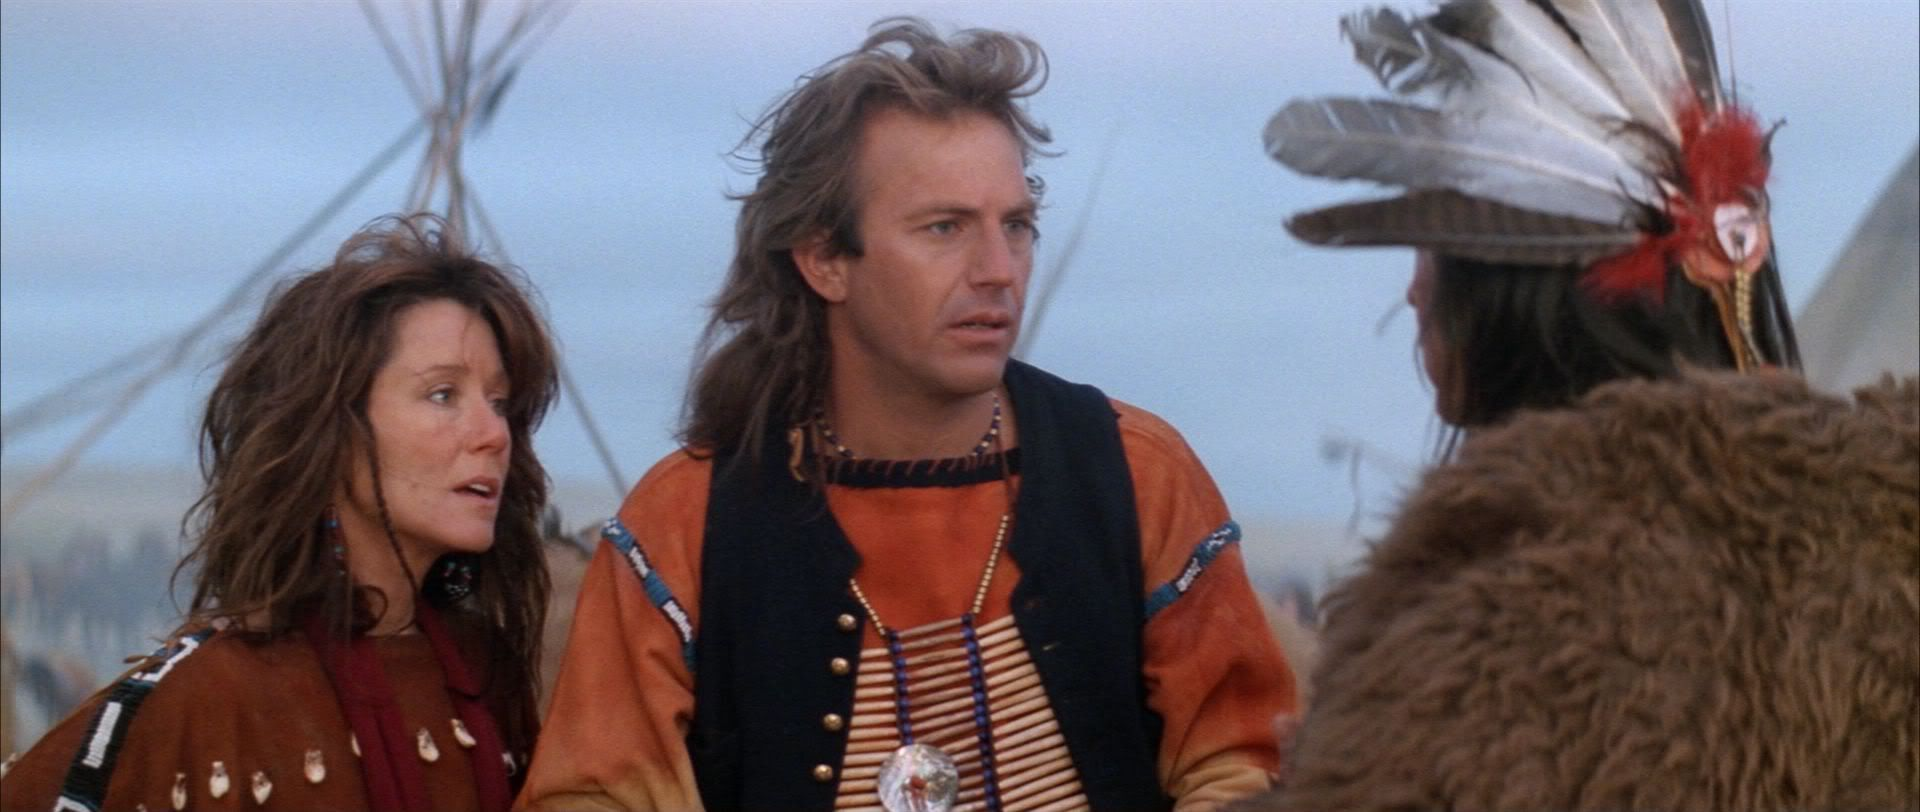 dances with wolves film review